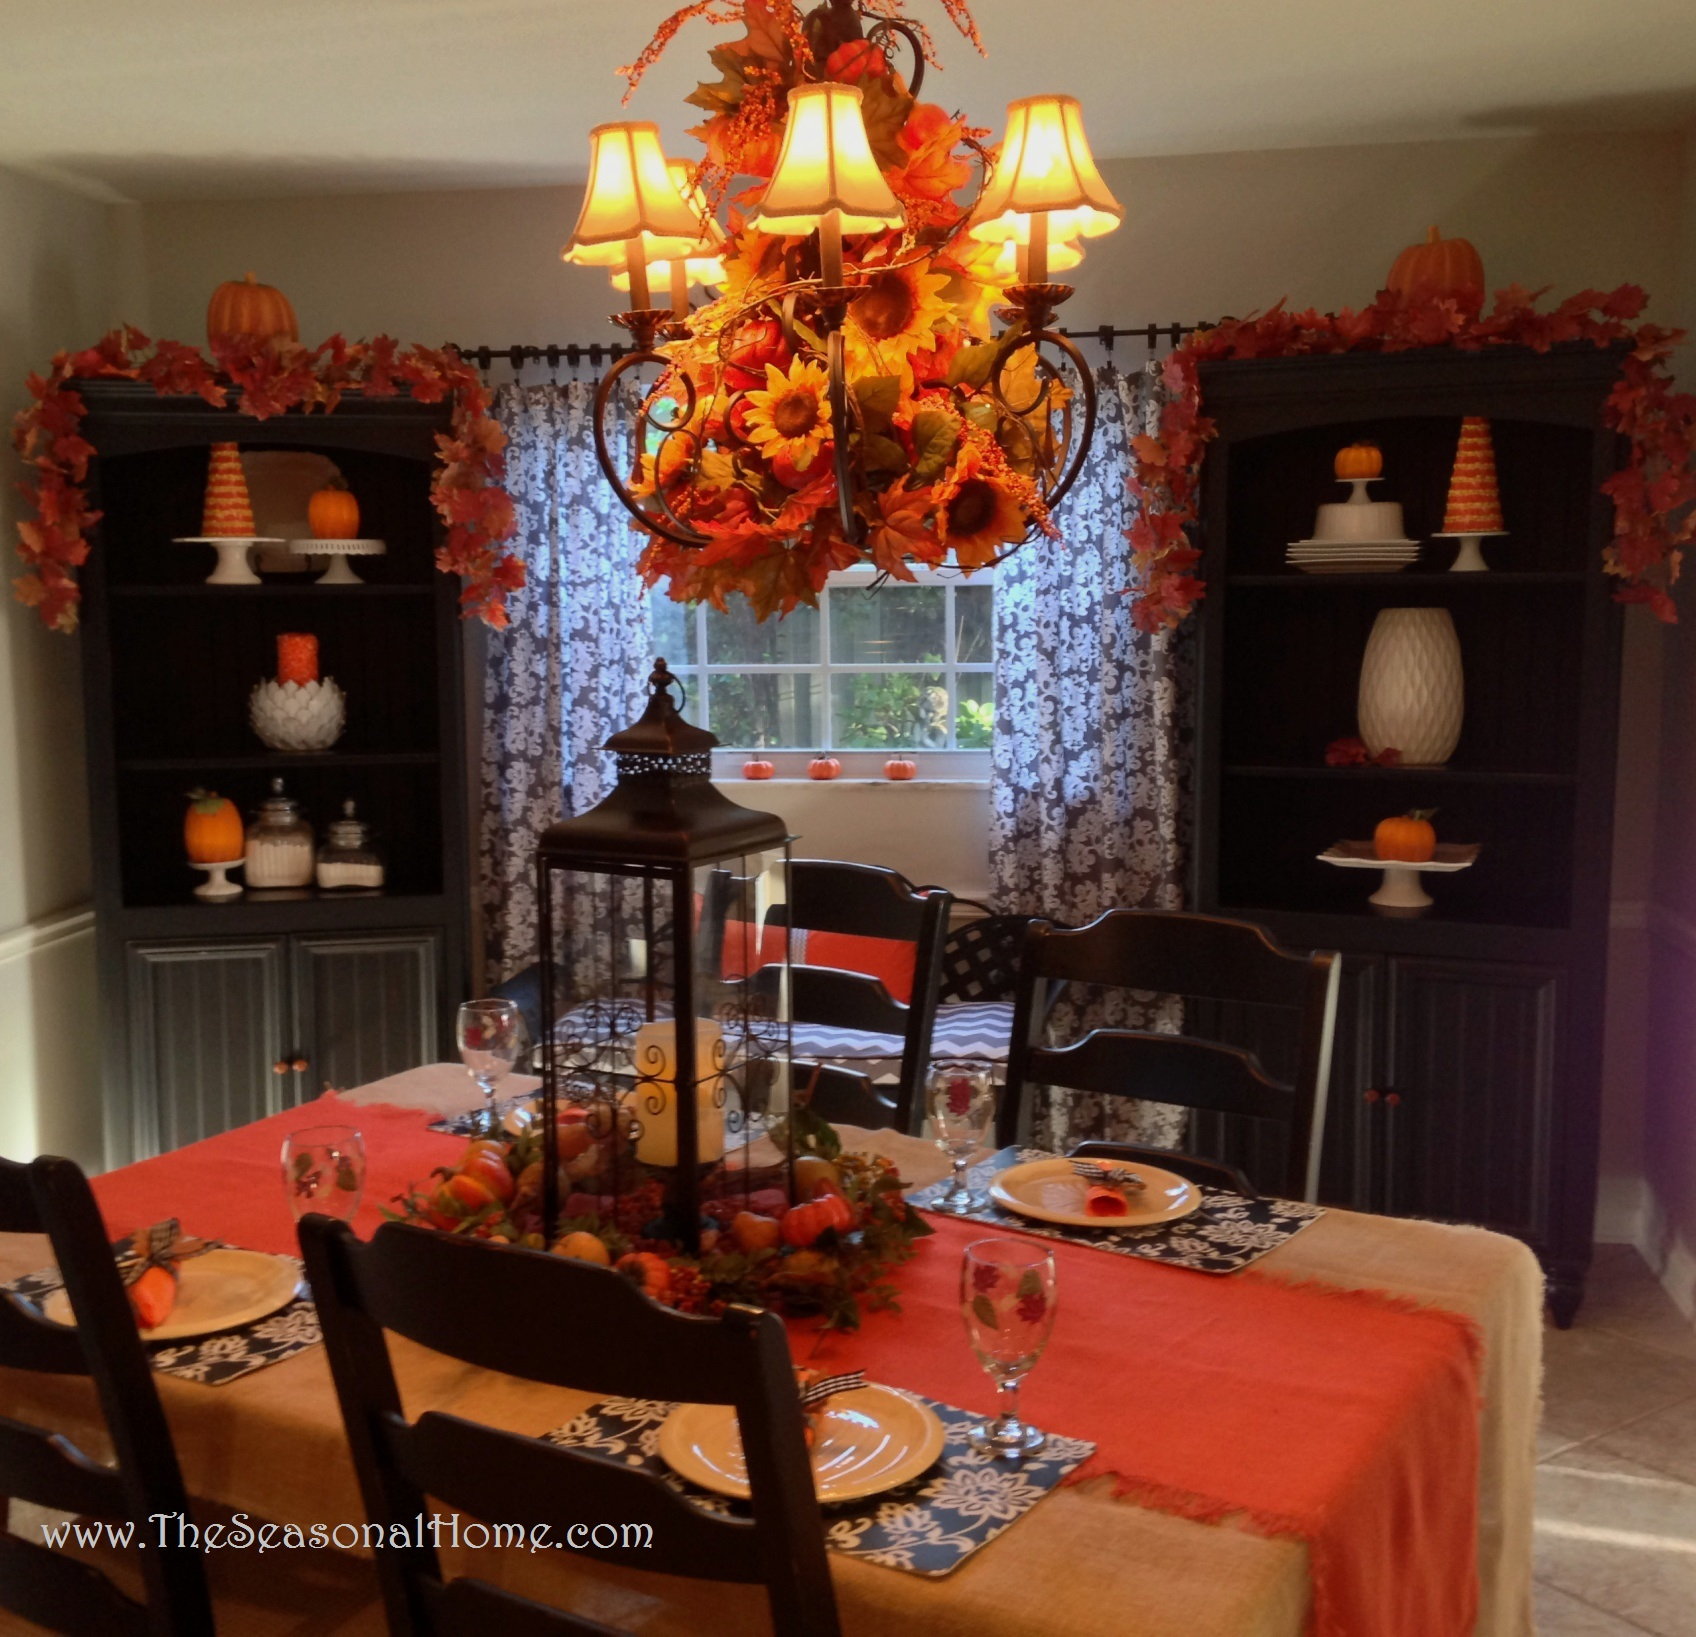 The Decorating Store: 3 Chandelier Ideas For: Fall, Halloween & Thanksgiving